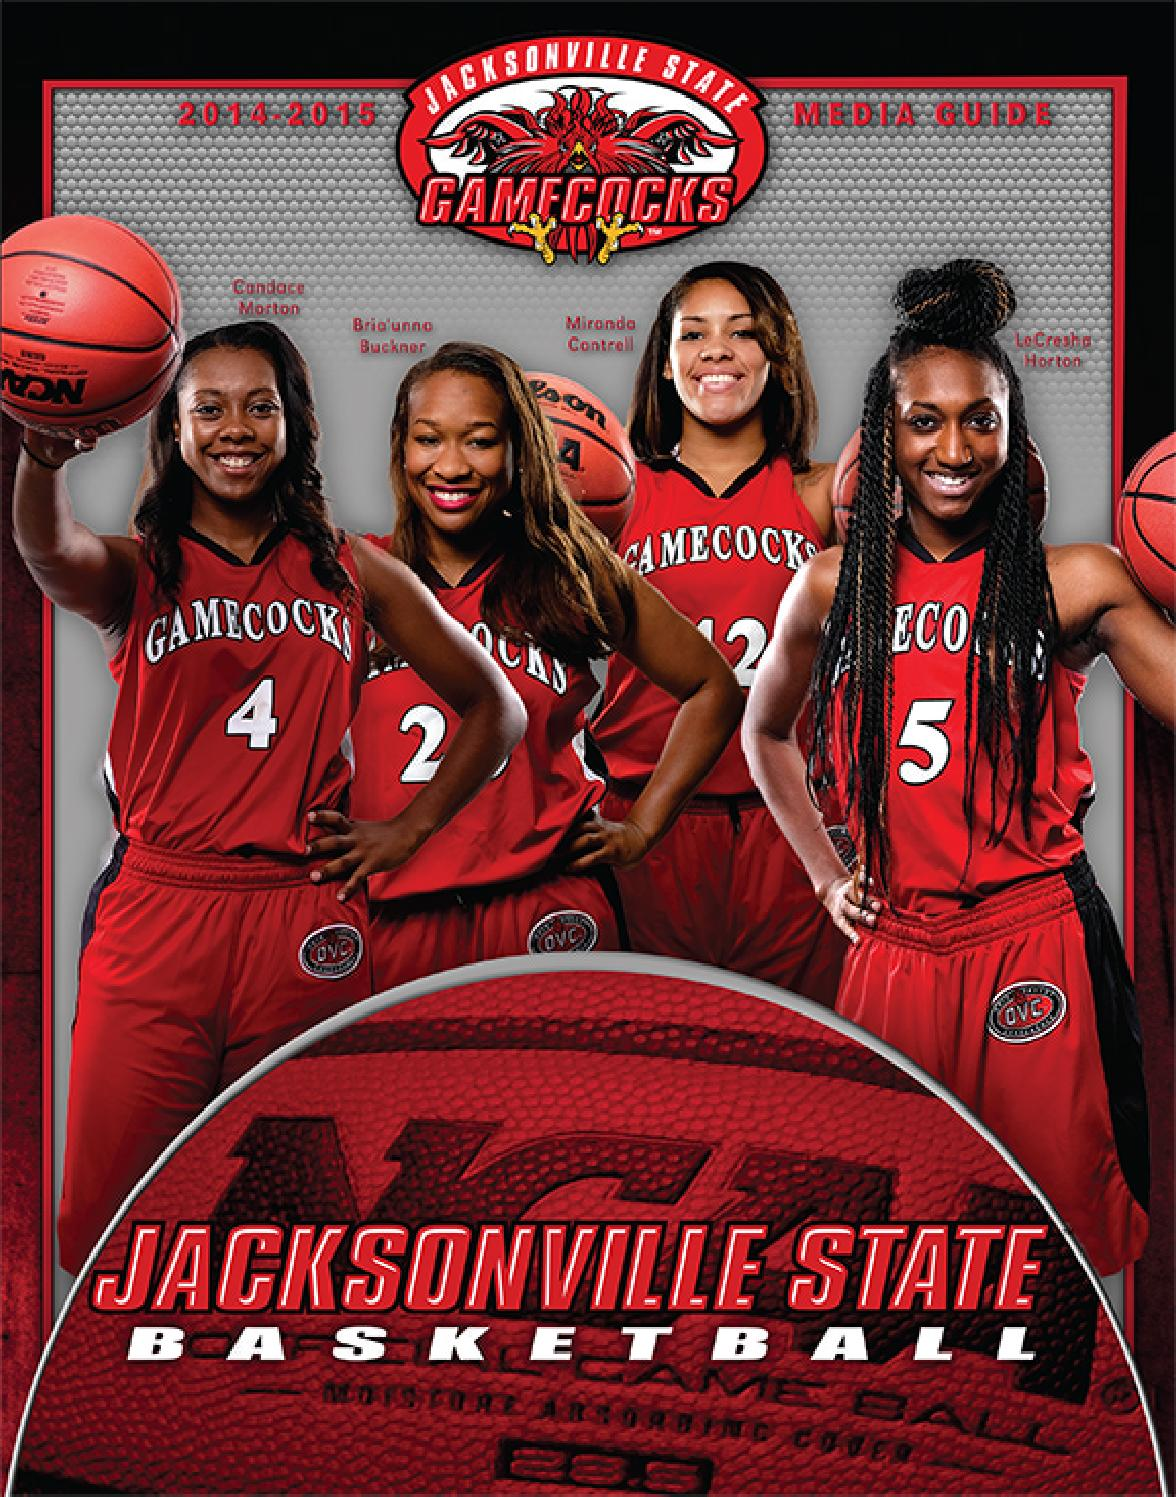 2014-15 Jacksonville State Women's Basketball Media Guide by Jacksonville State Athletics - Issuu